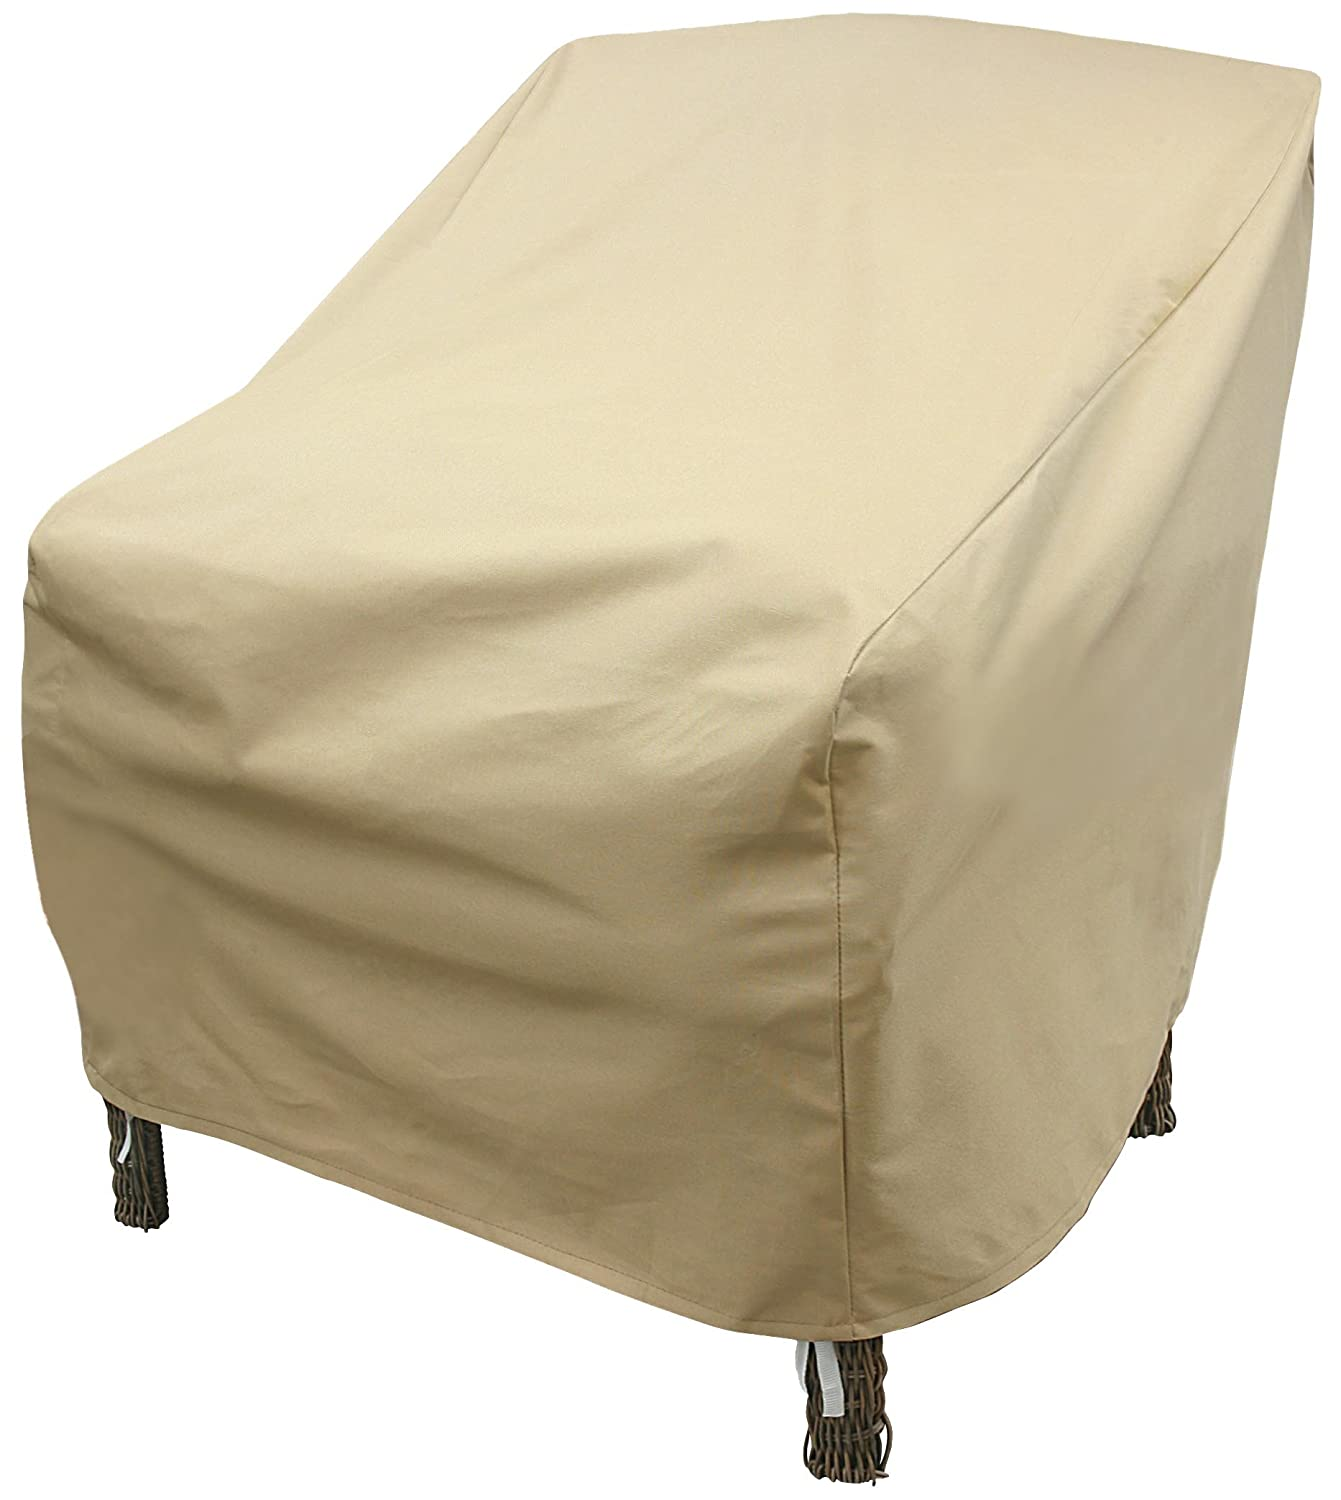 Waterproof Chair Covers Modern Leisure Patio Chair Cover New Free Shipping Ebay